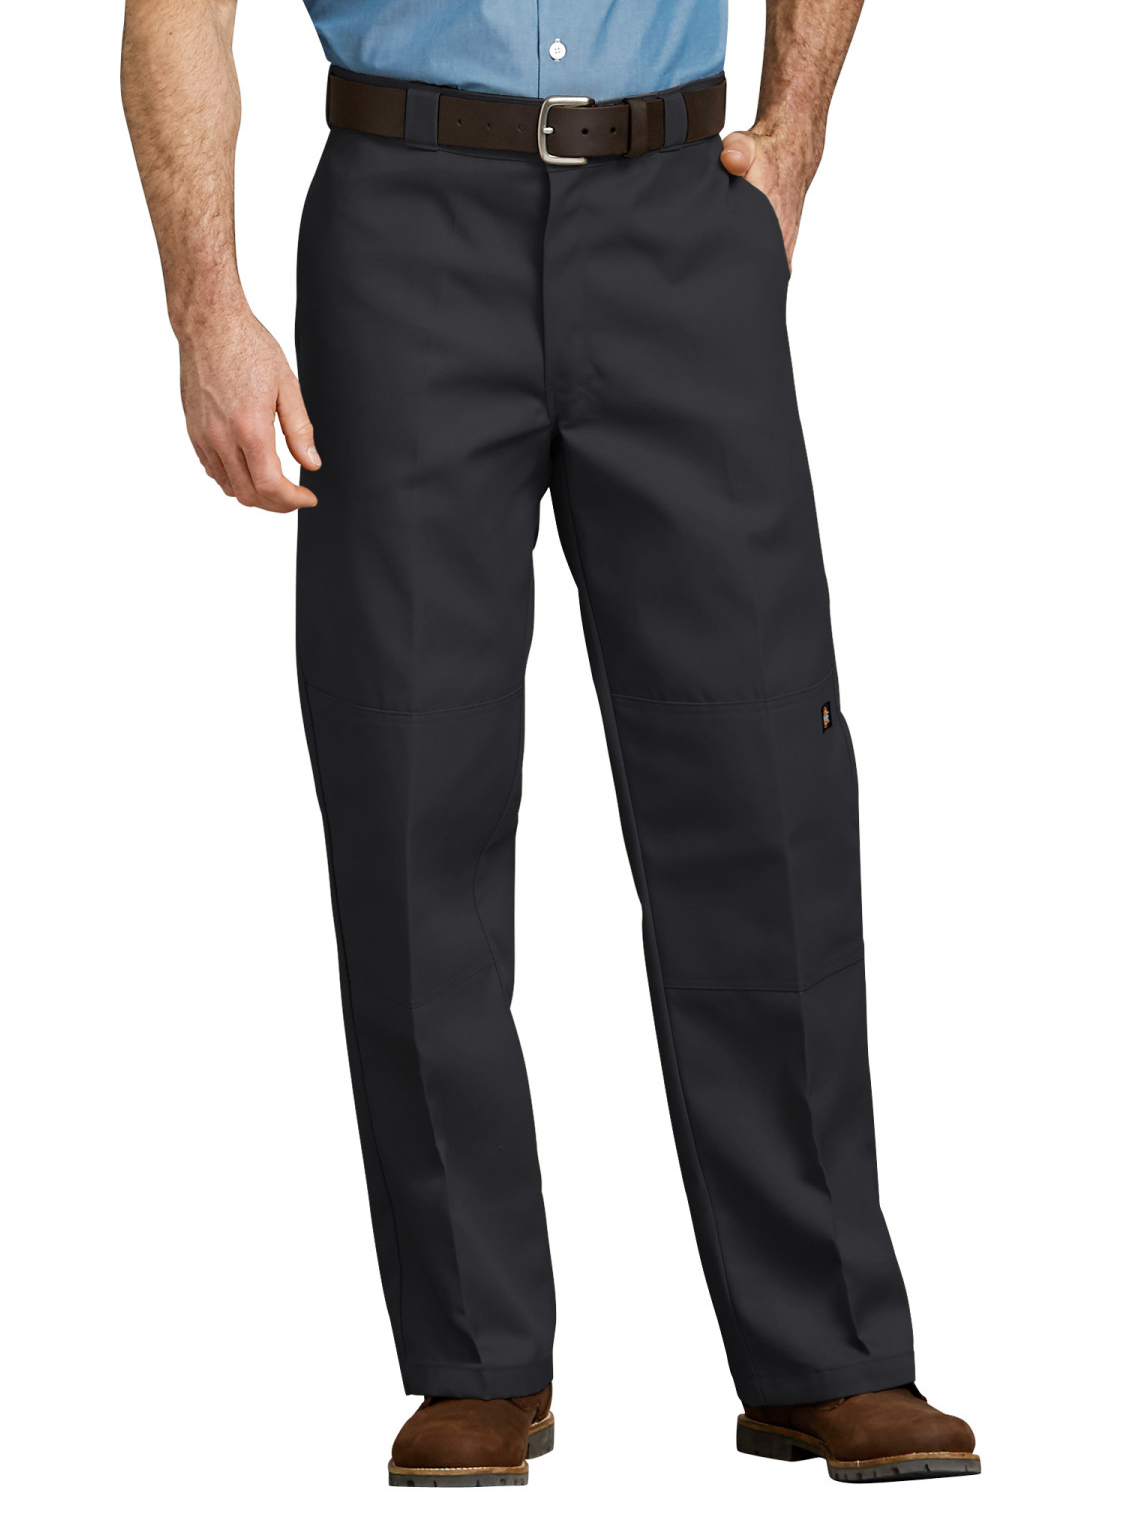 Big Men's Loose Fit Double Knee Work Pant